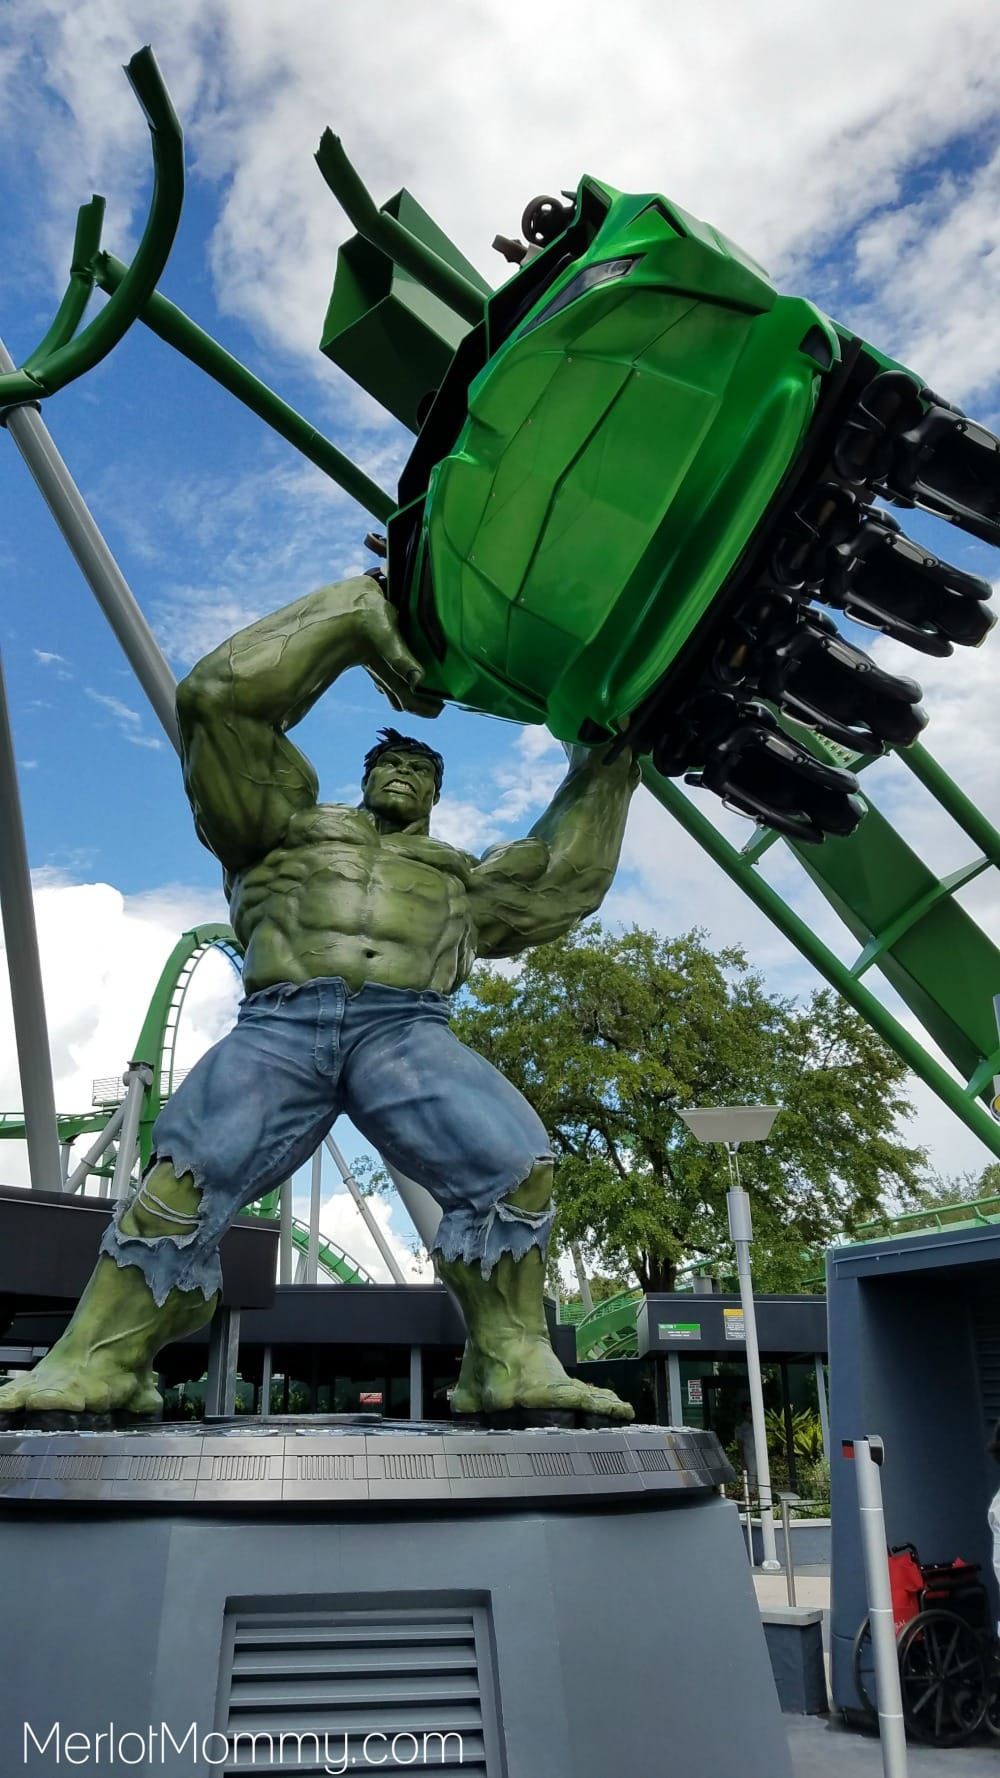 The Incredible Hulk Coaster at Universal Islands of Adventure, The Best Rides for Teens at Universal Orlando Resort